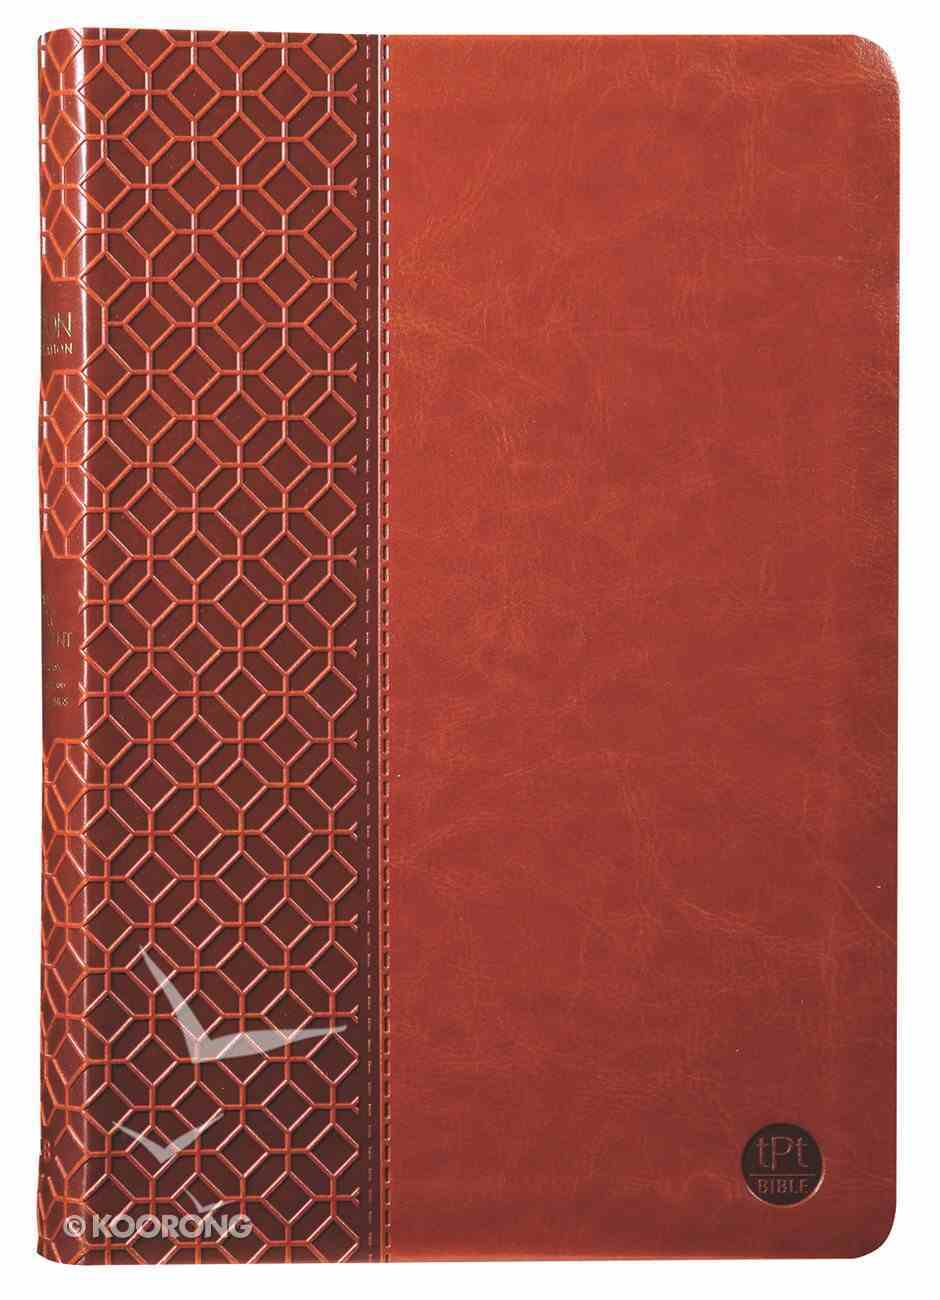 TPT New Testament Large Print Brown (With Psalms Proverbs And The Song Of Songs) Imitation Leather